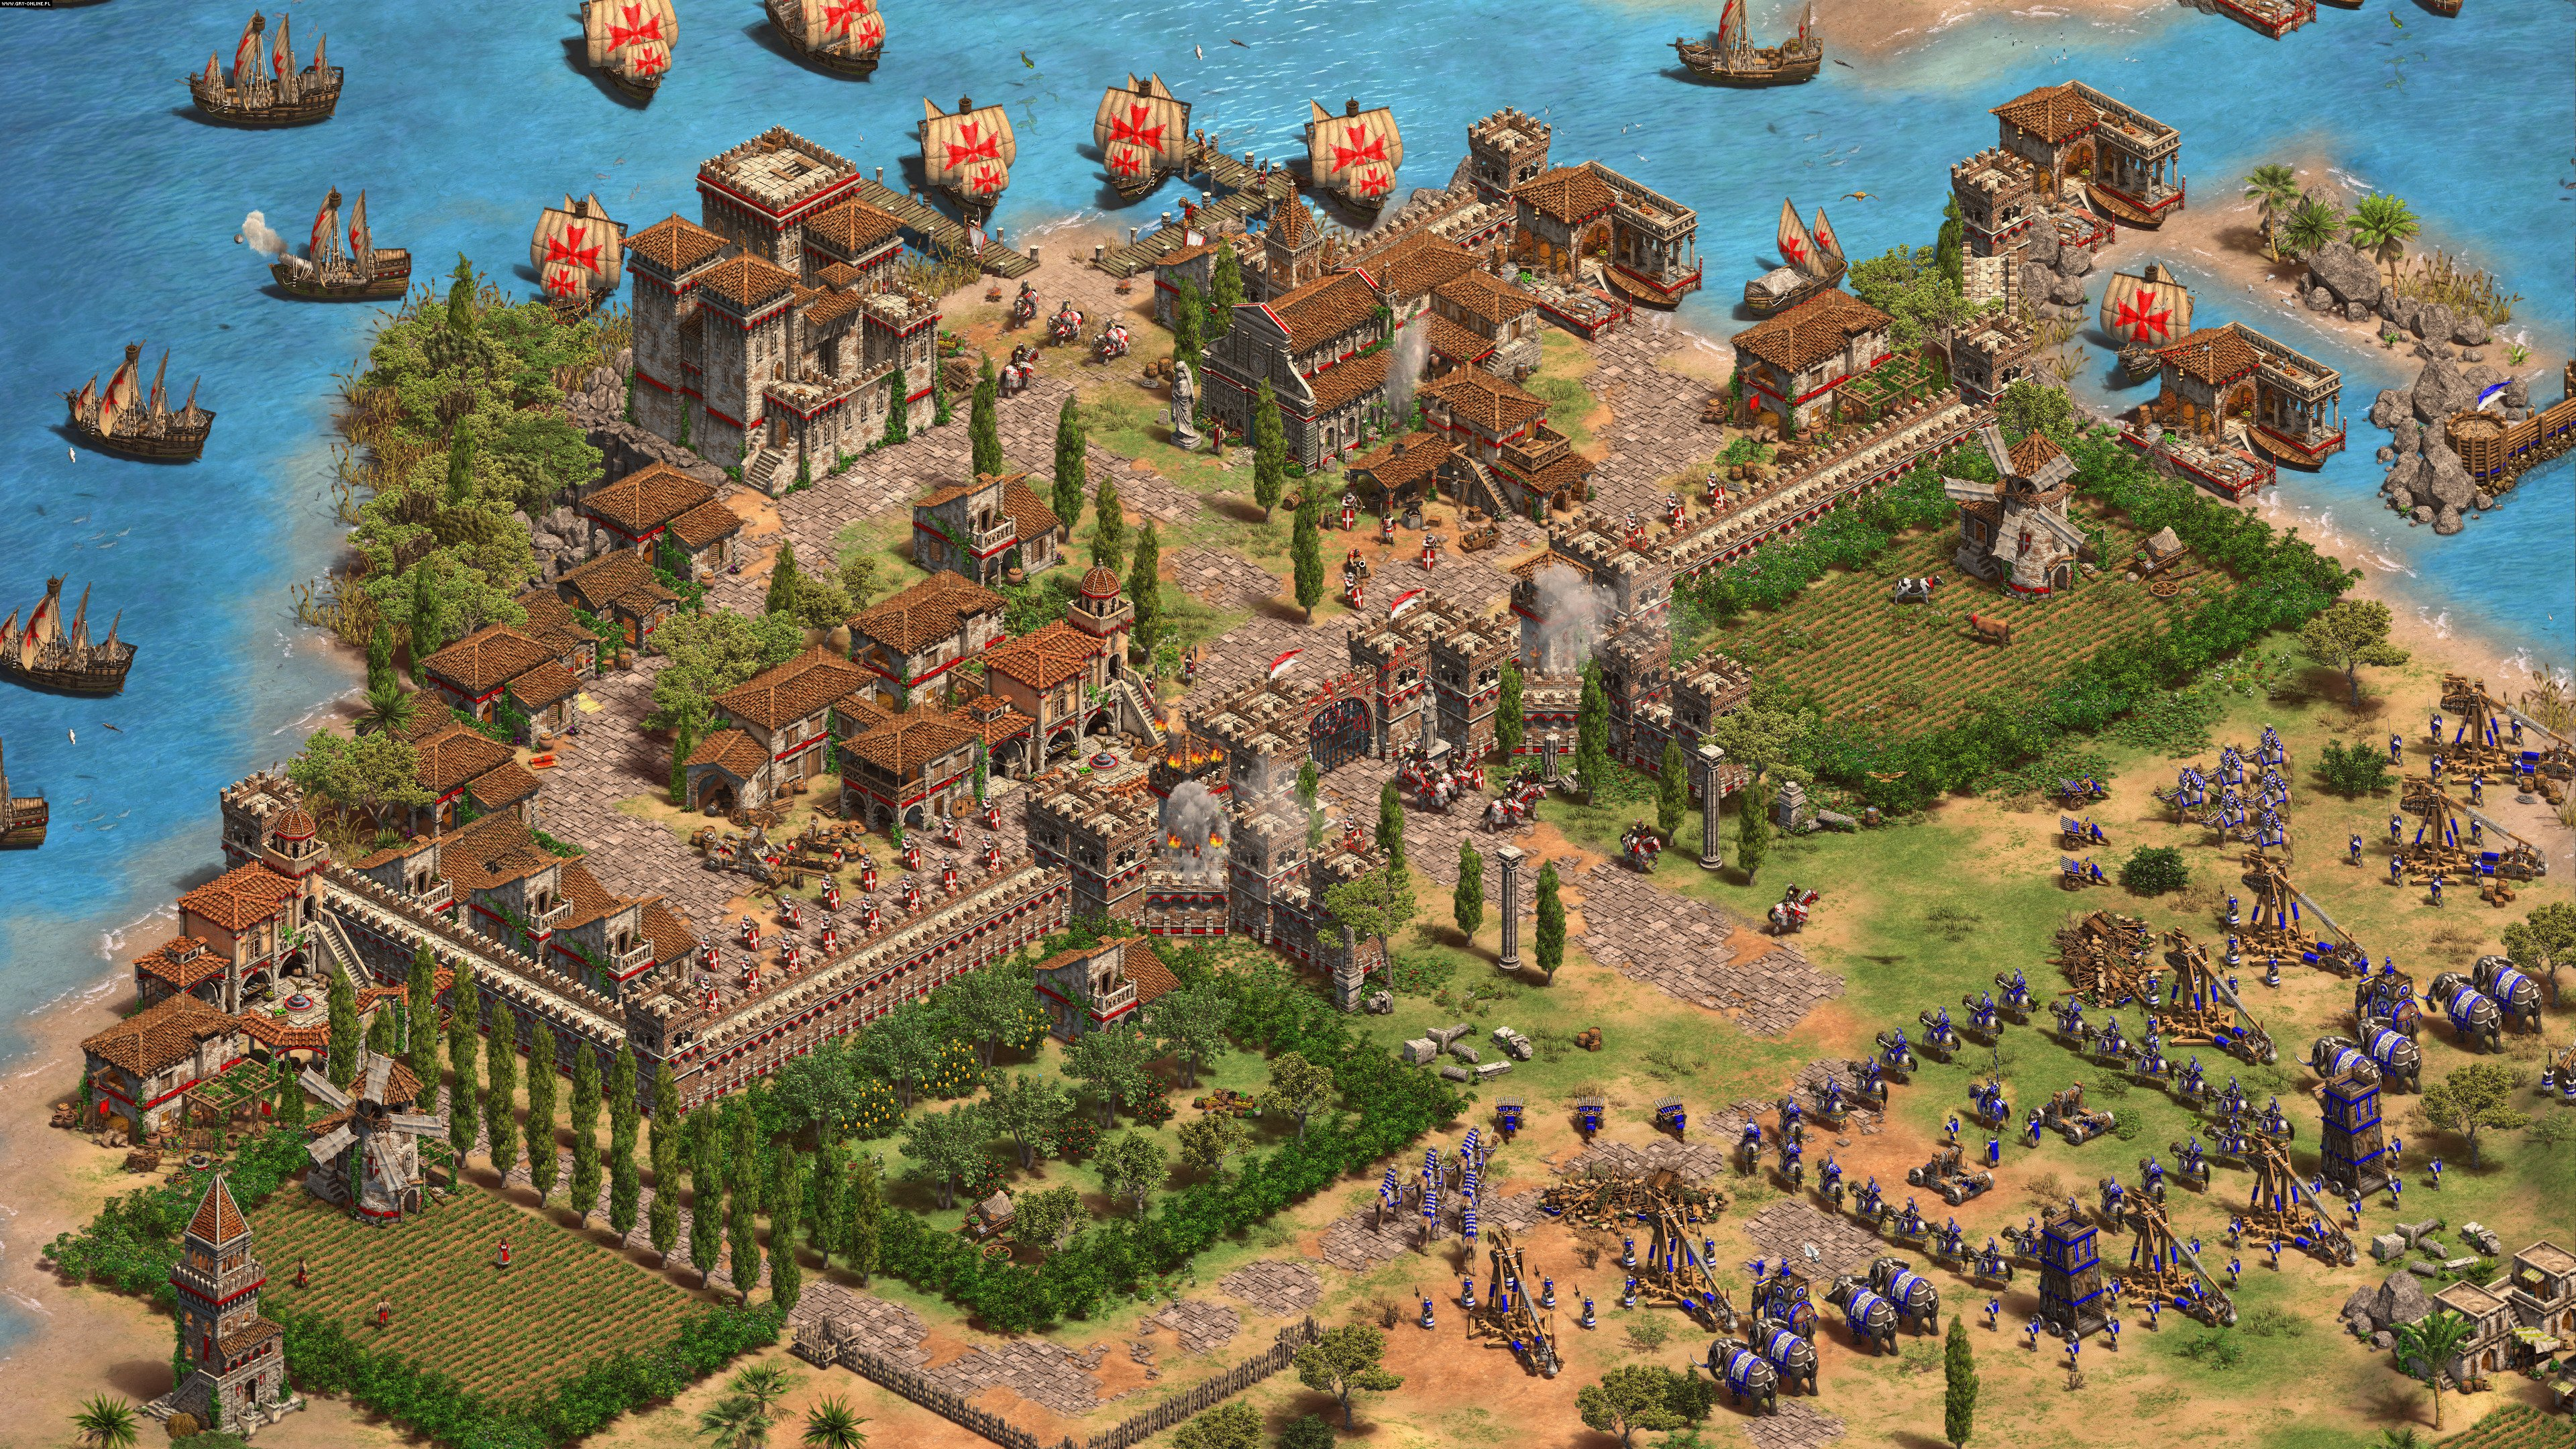 Age of Empires II: Definitive Edition PC Games Image 3/24, Forgotten Empires, Xbox Game Studios / Microsoft Studios